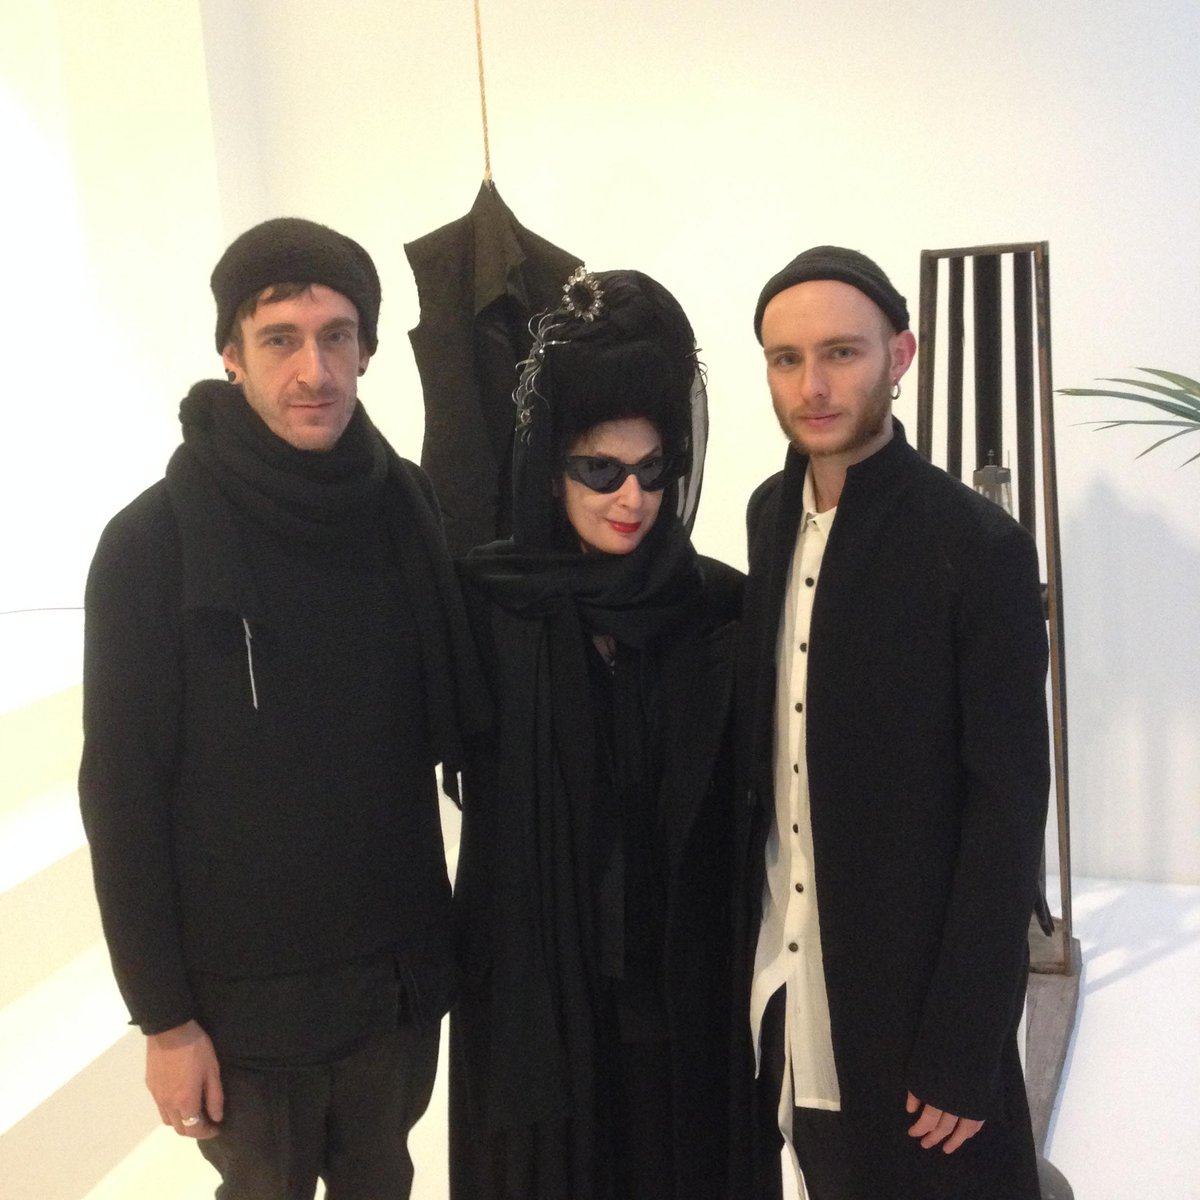 a_shaded_view_on_fashion_by_diane_pernet-diane_pernet-426905405.jpg